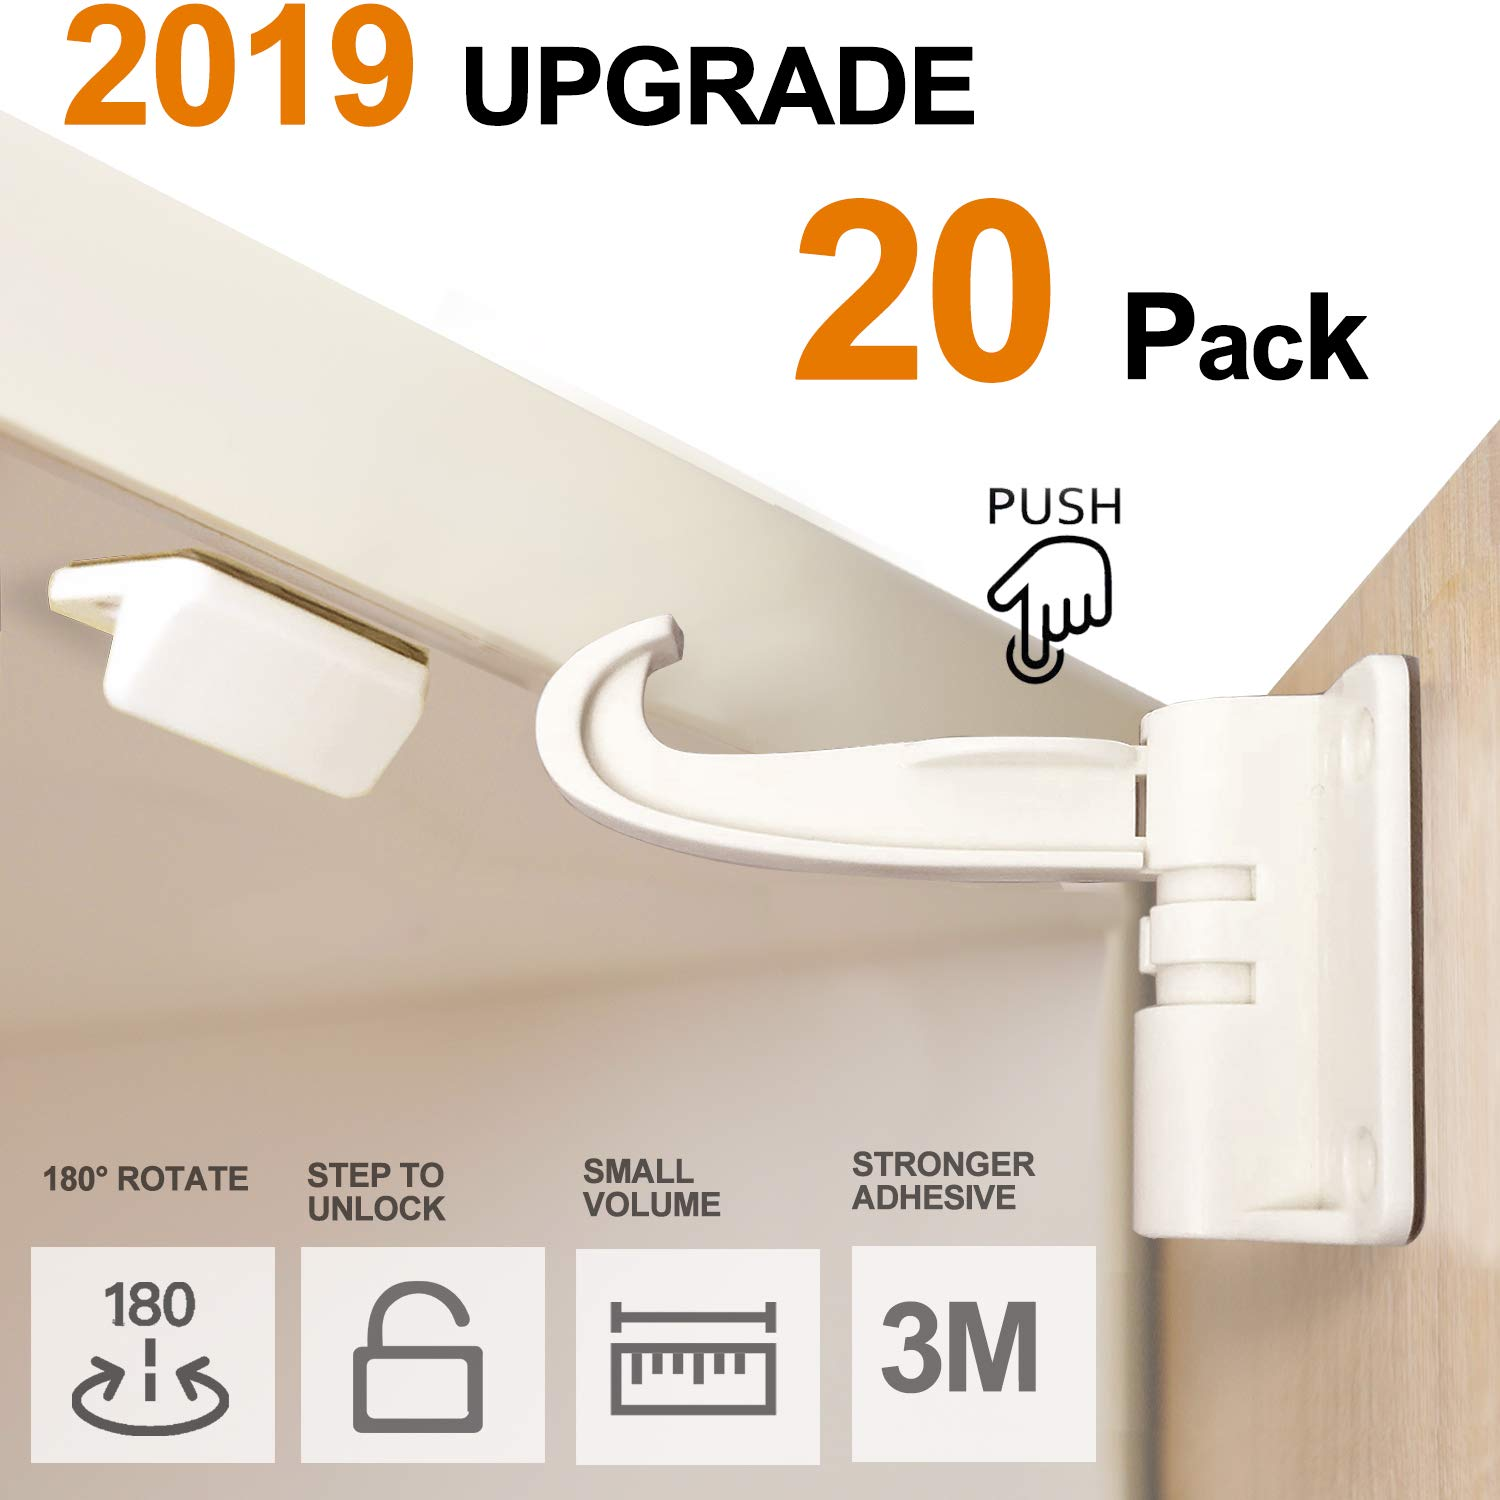 20 Pack Newest Kitchen Cabinet Locks Child Safety Baby Safety Cabinet Locks No Drilling Screws for Latches and Drawers, UPGRADED 3M Adhesives, Invisible Design White by Omami